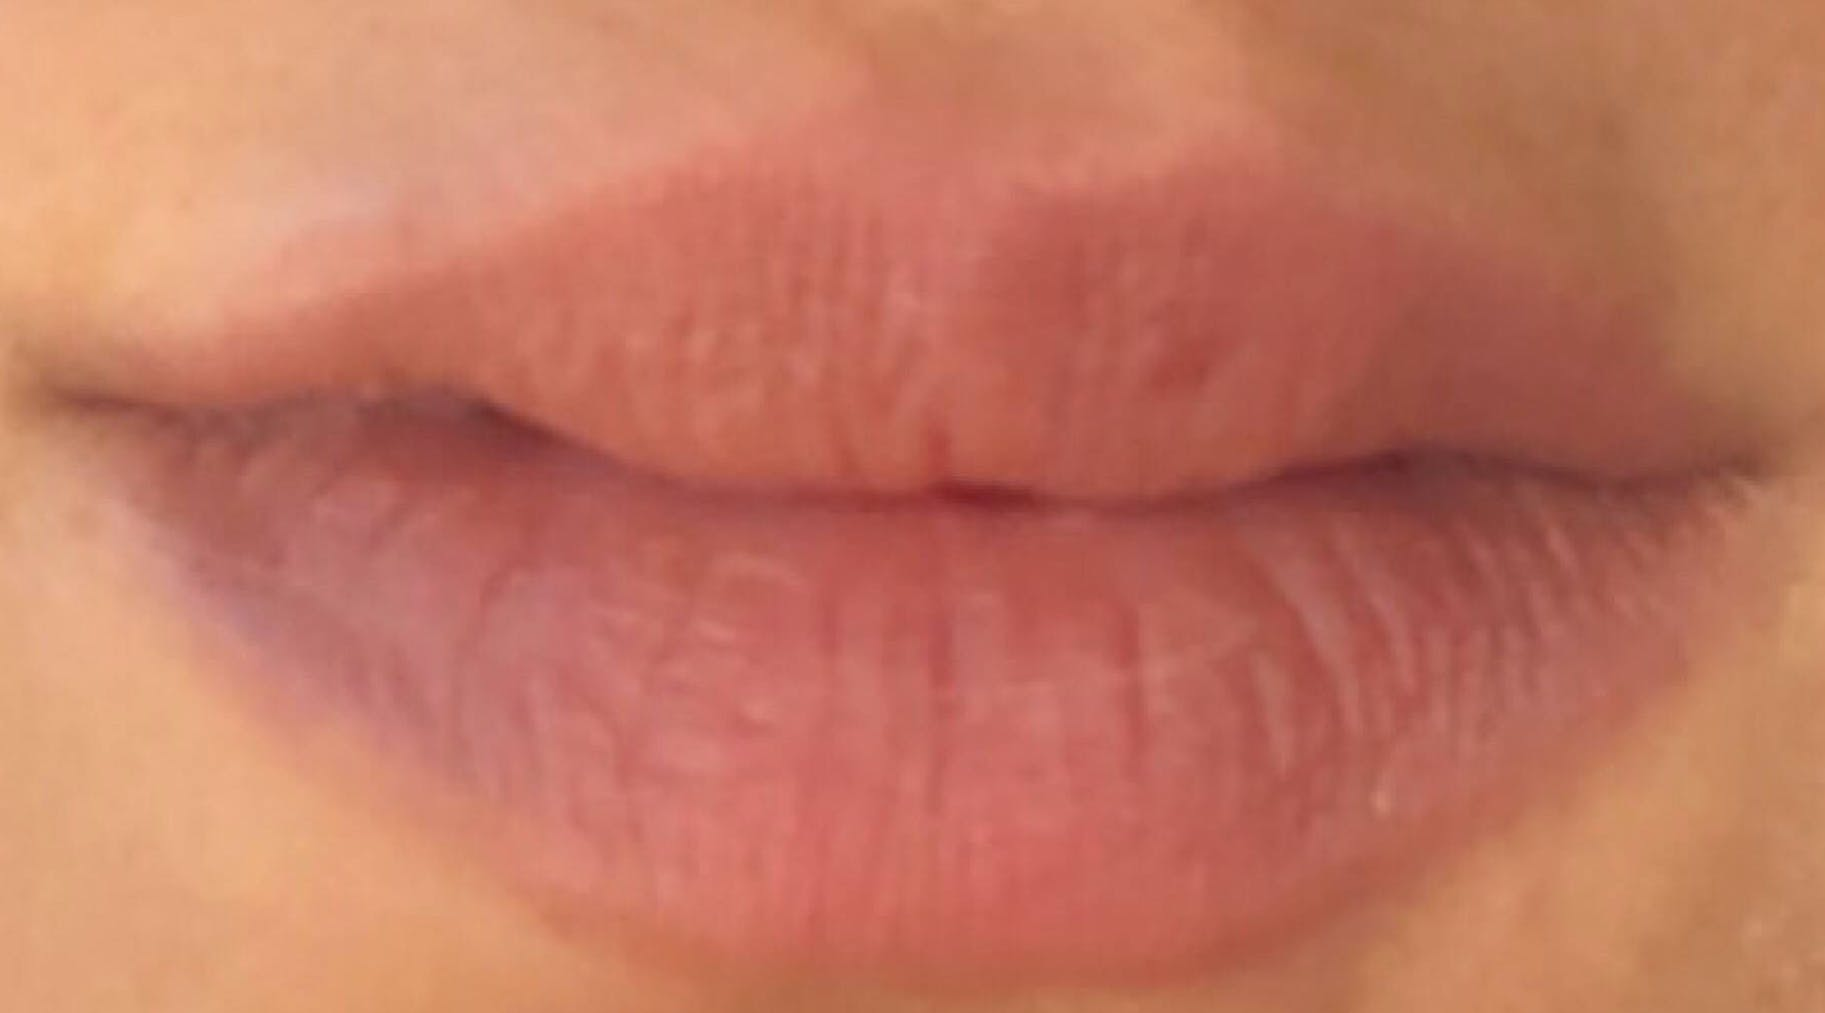 Lip Augmentation Gallery - Patient 4454372 - Image 1